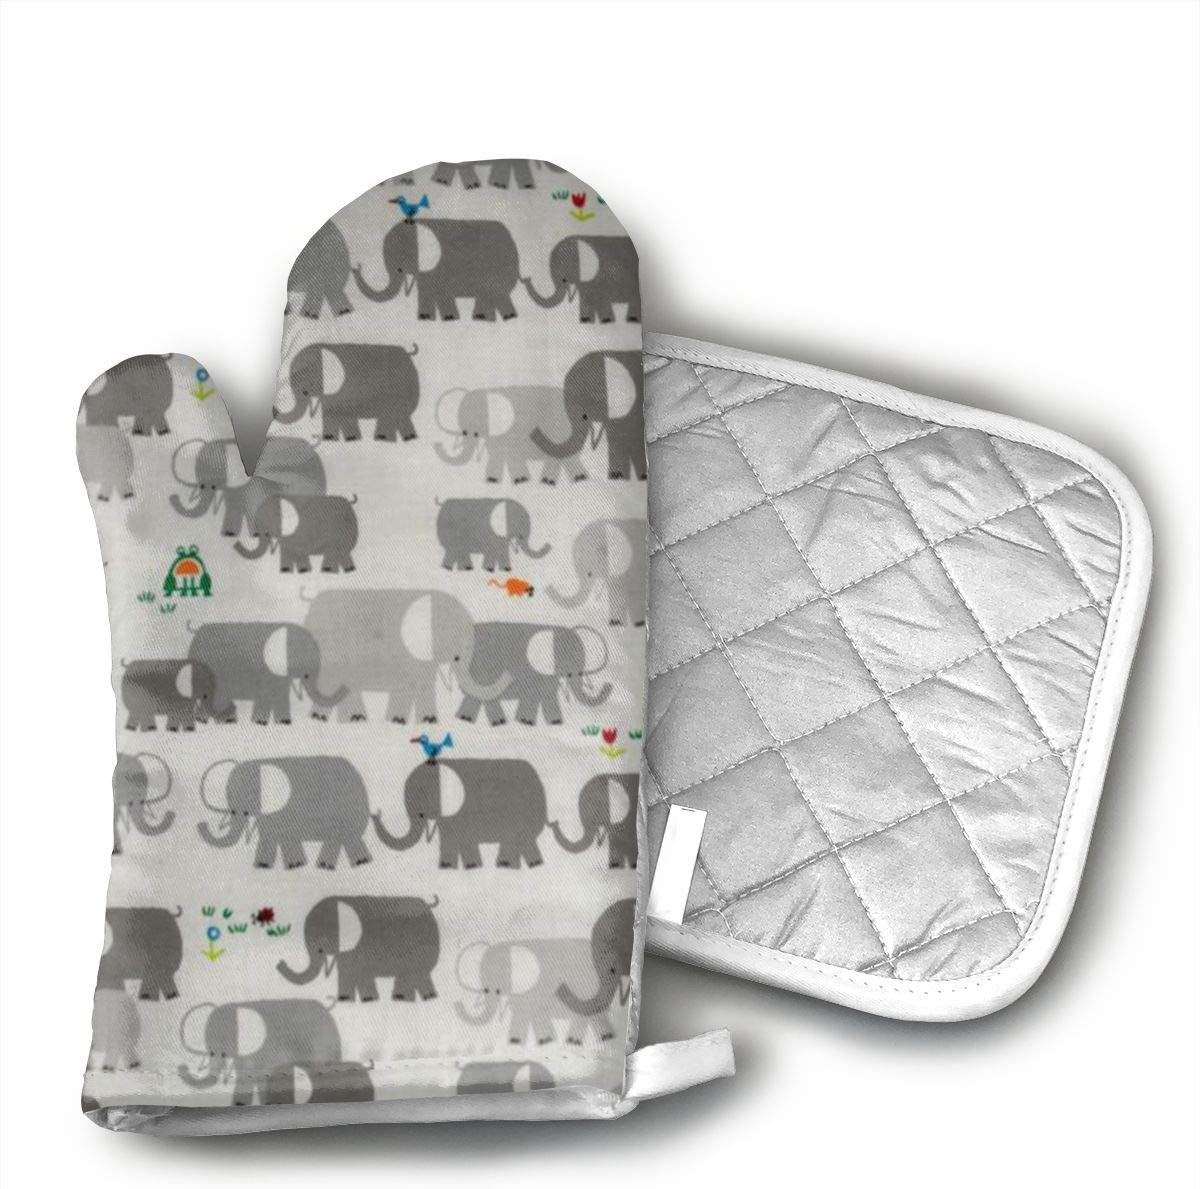 Mnsuh9 Happy Drawing Organic Elephants Oven Mitts Cotton Quilting Lining, Oven Gloves and Pot Holders Kitchen Set for BBQ Cooking Baking, Grilling, Barbecue,